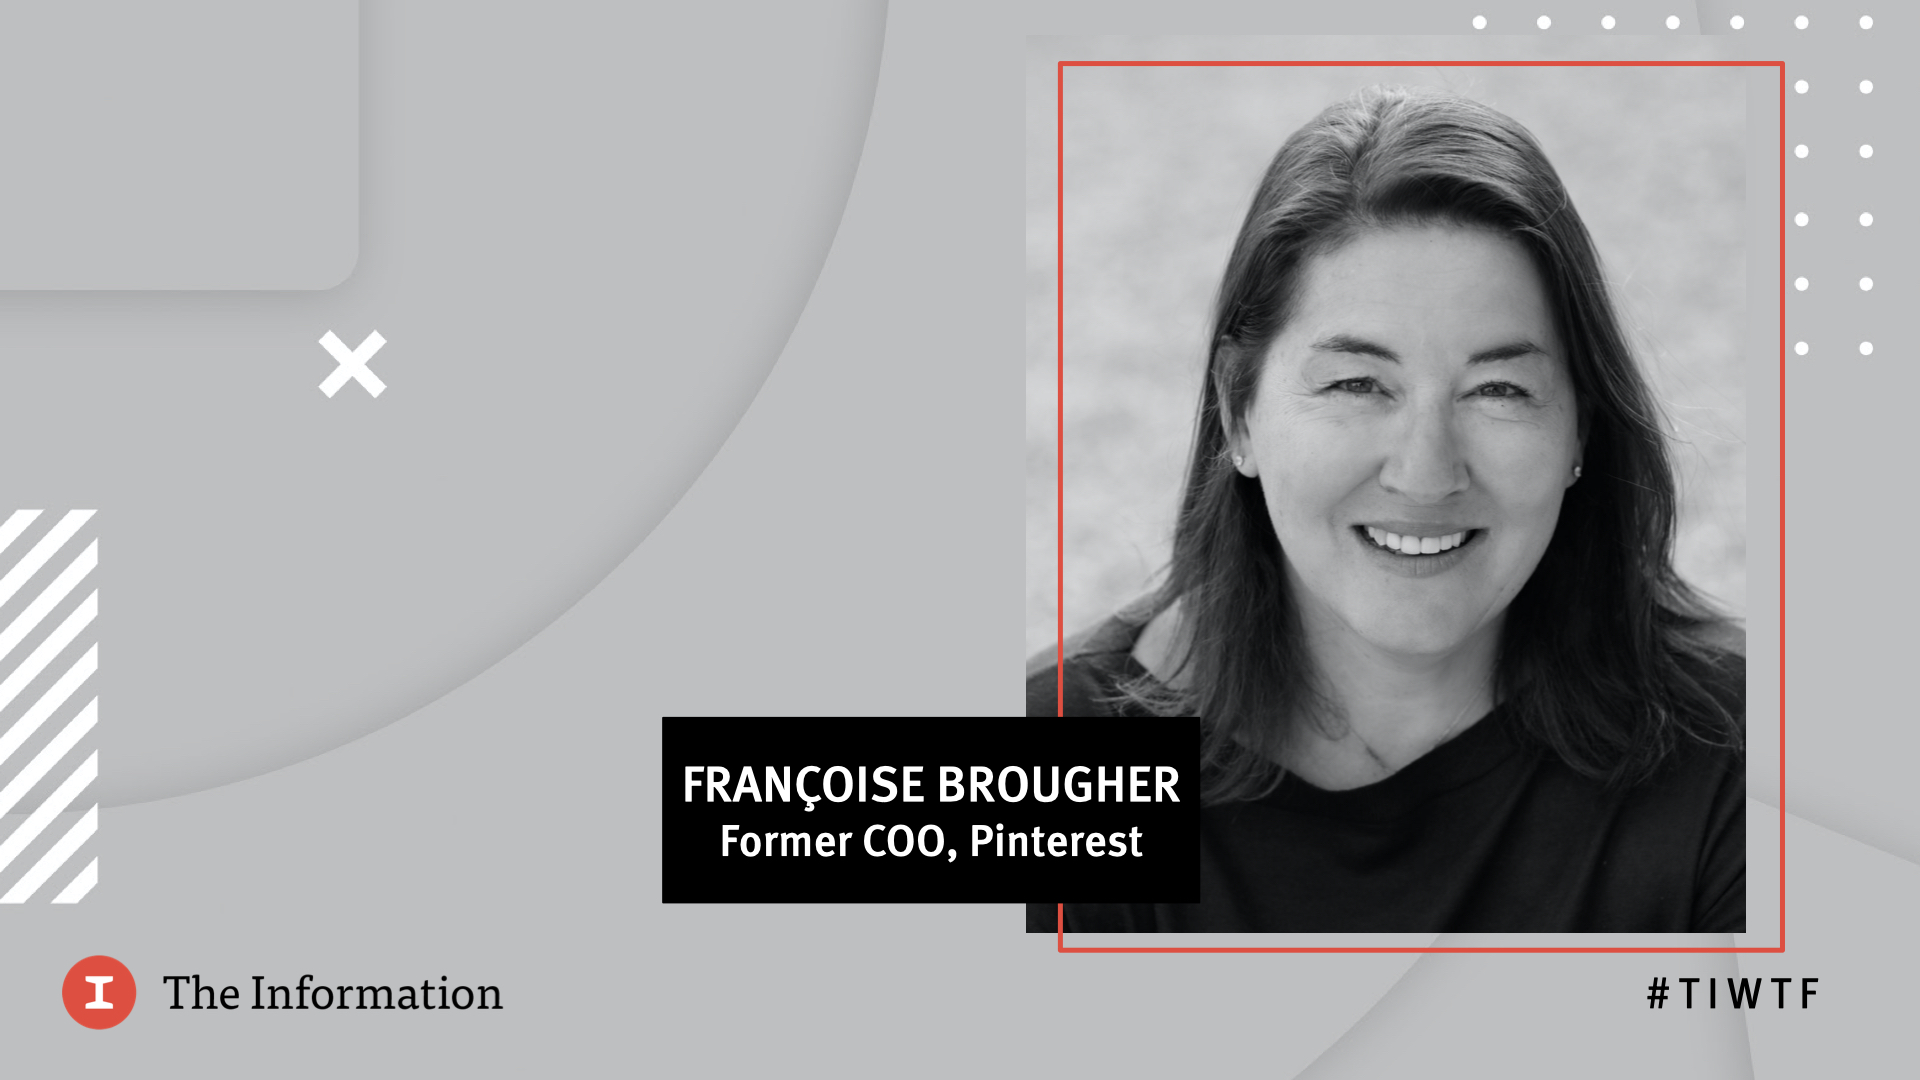 WTF 2020 - Pinterest's Former COO Françoise Brougher in conversation with Jessica Lessin, Founder & CEO of The Information